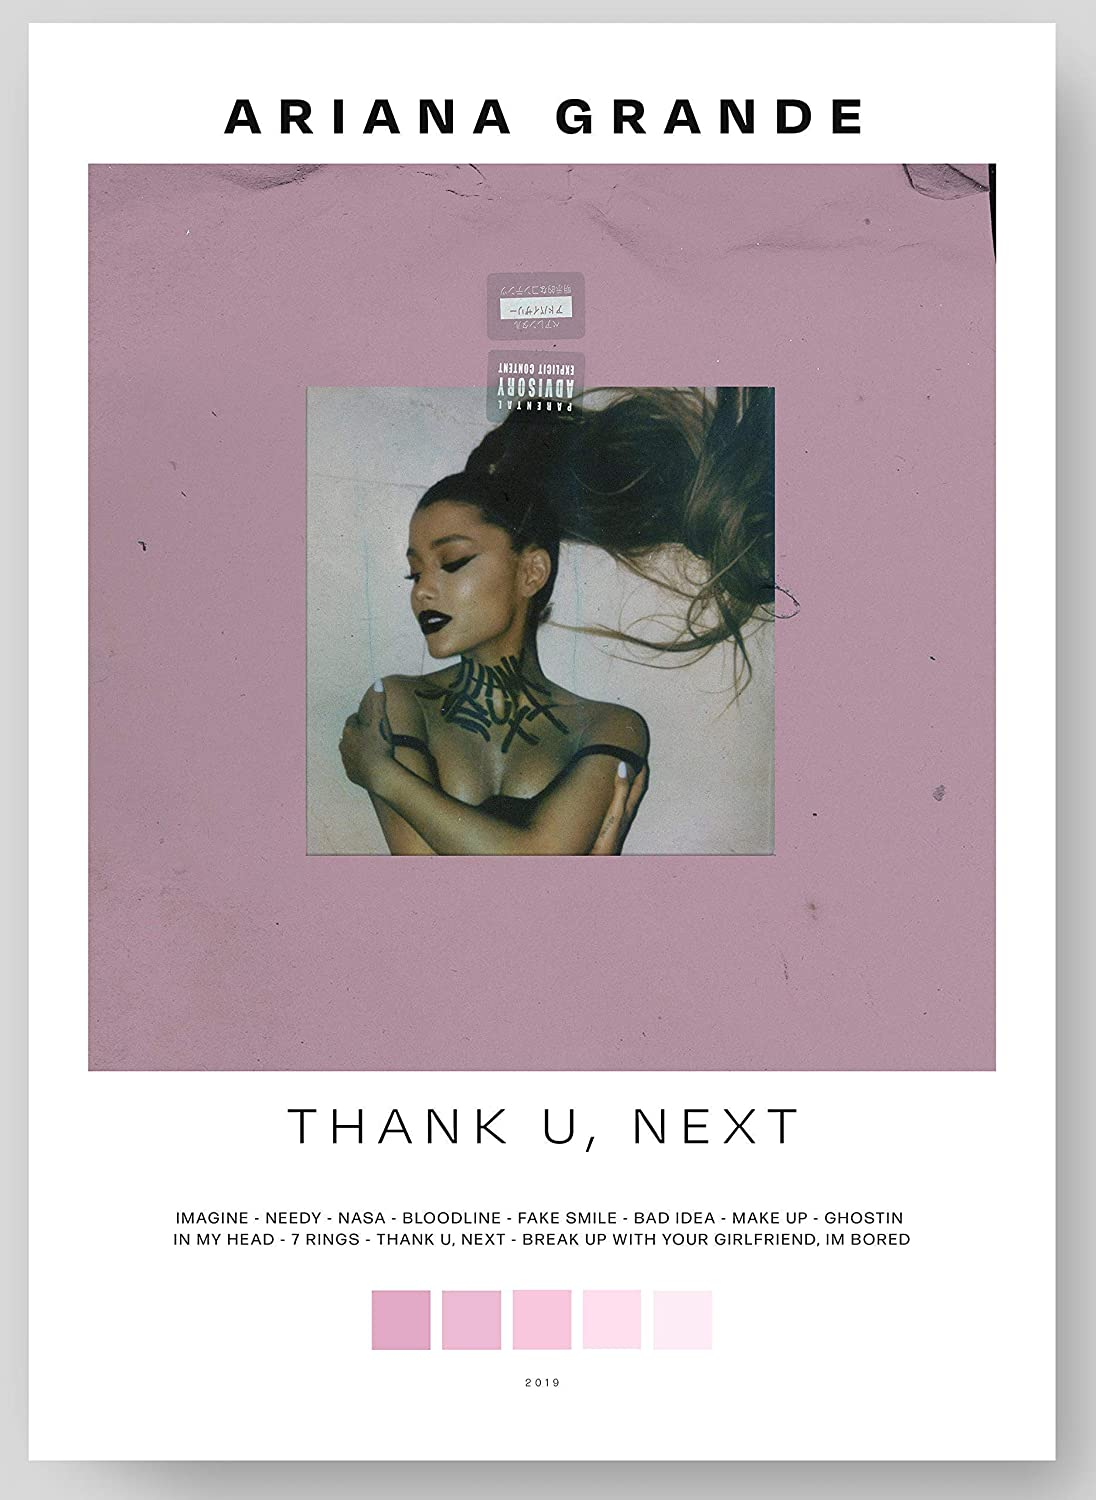 """Ariana Grande - Thank U, Next Album Cover Poster Print With Track List and Color Tiles - 11"""" x 17"""" inches Ready to Frame - Wall Art"""